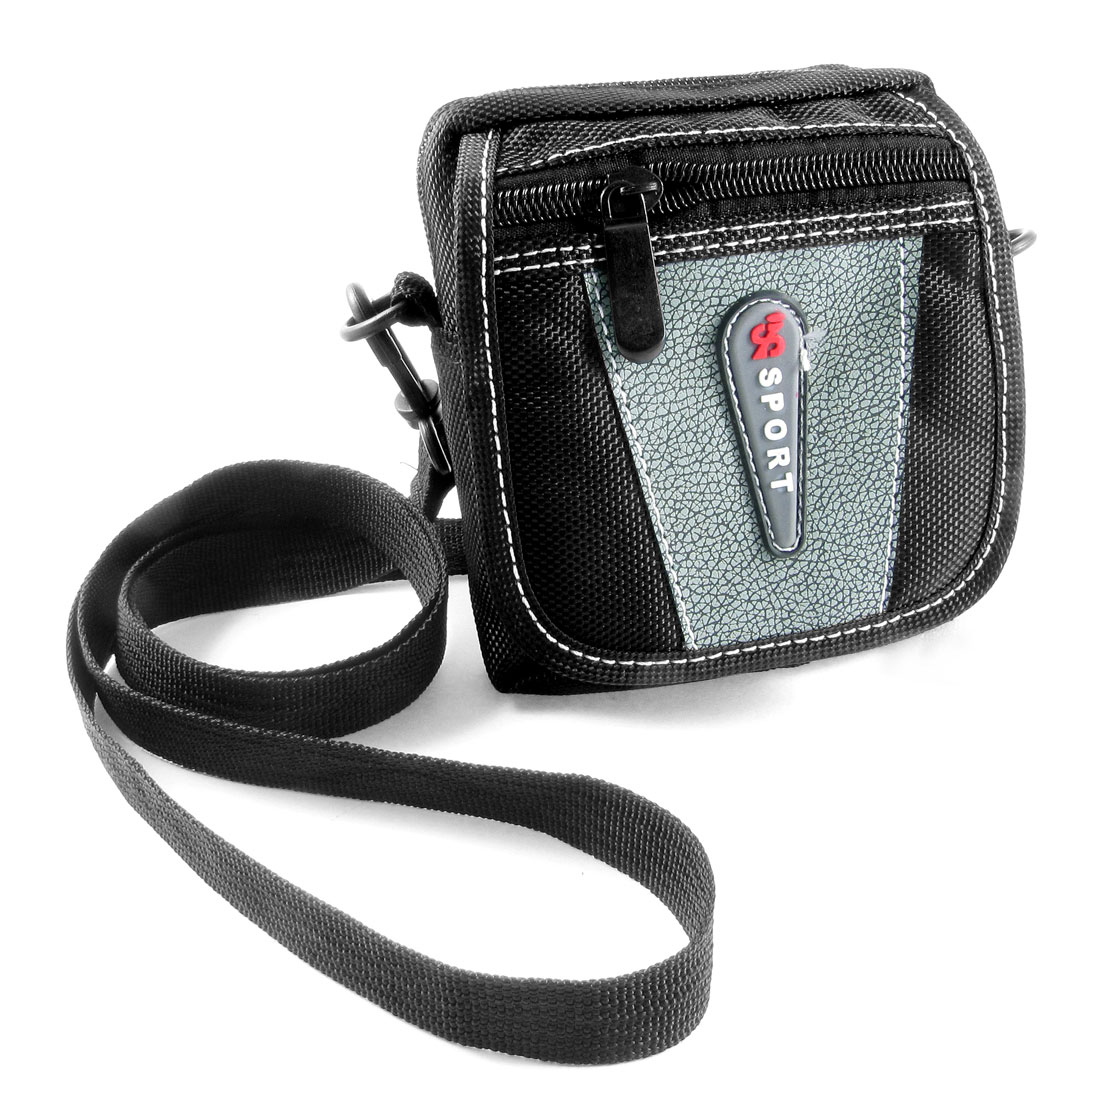 Man Black Gray Faux Leather Nylon 3 Pockets Adjustable Strap Waist Bag Pouch